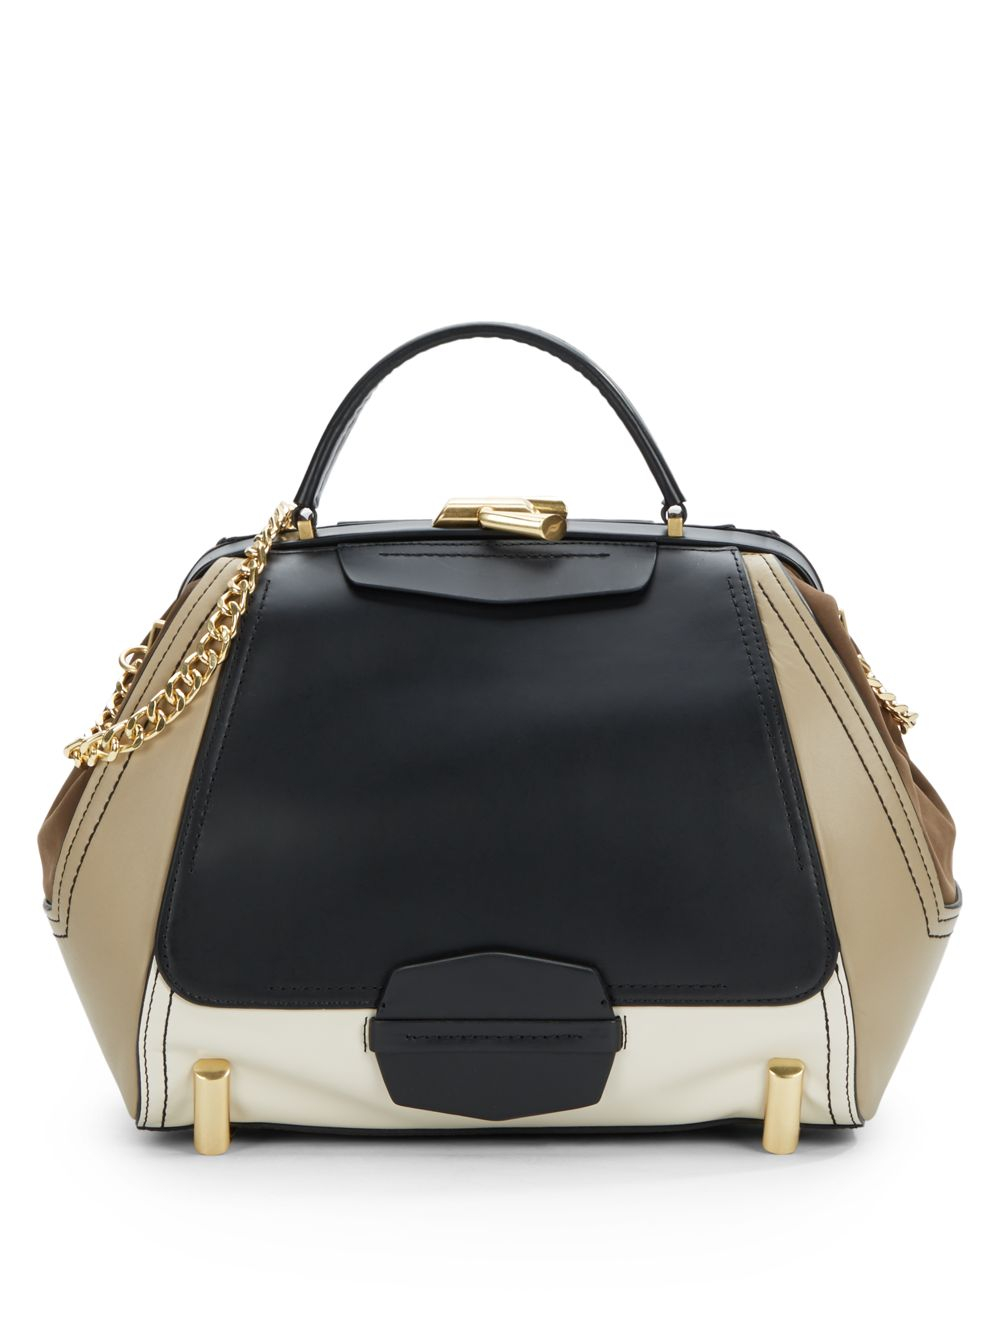 Zac Zac Posen Eartha Top Handle Colorblock Leather Bag In